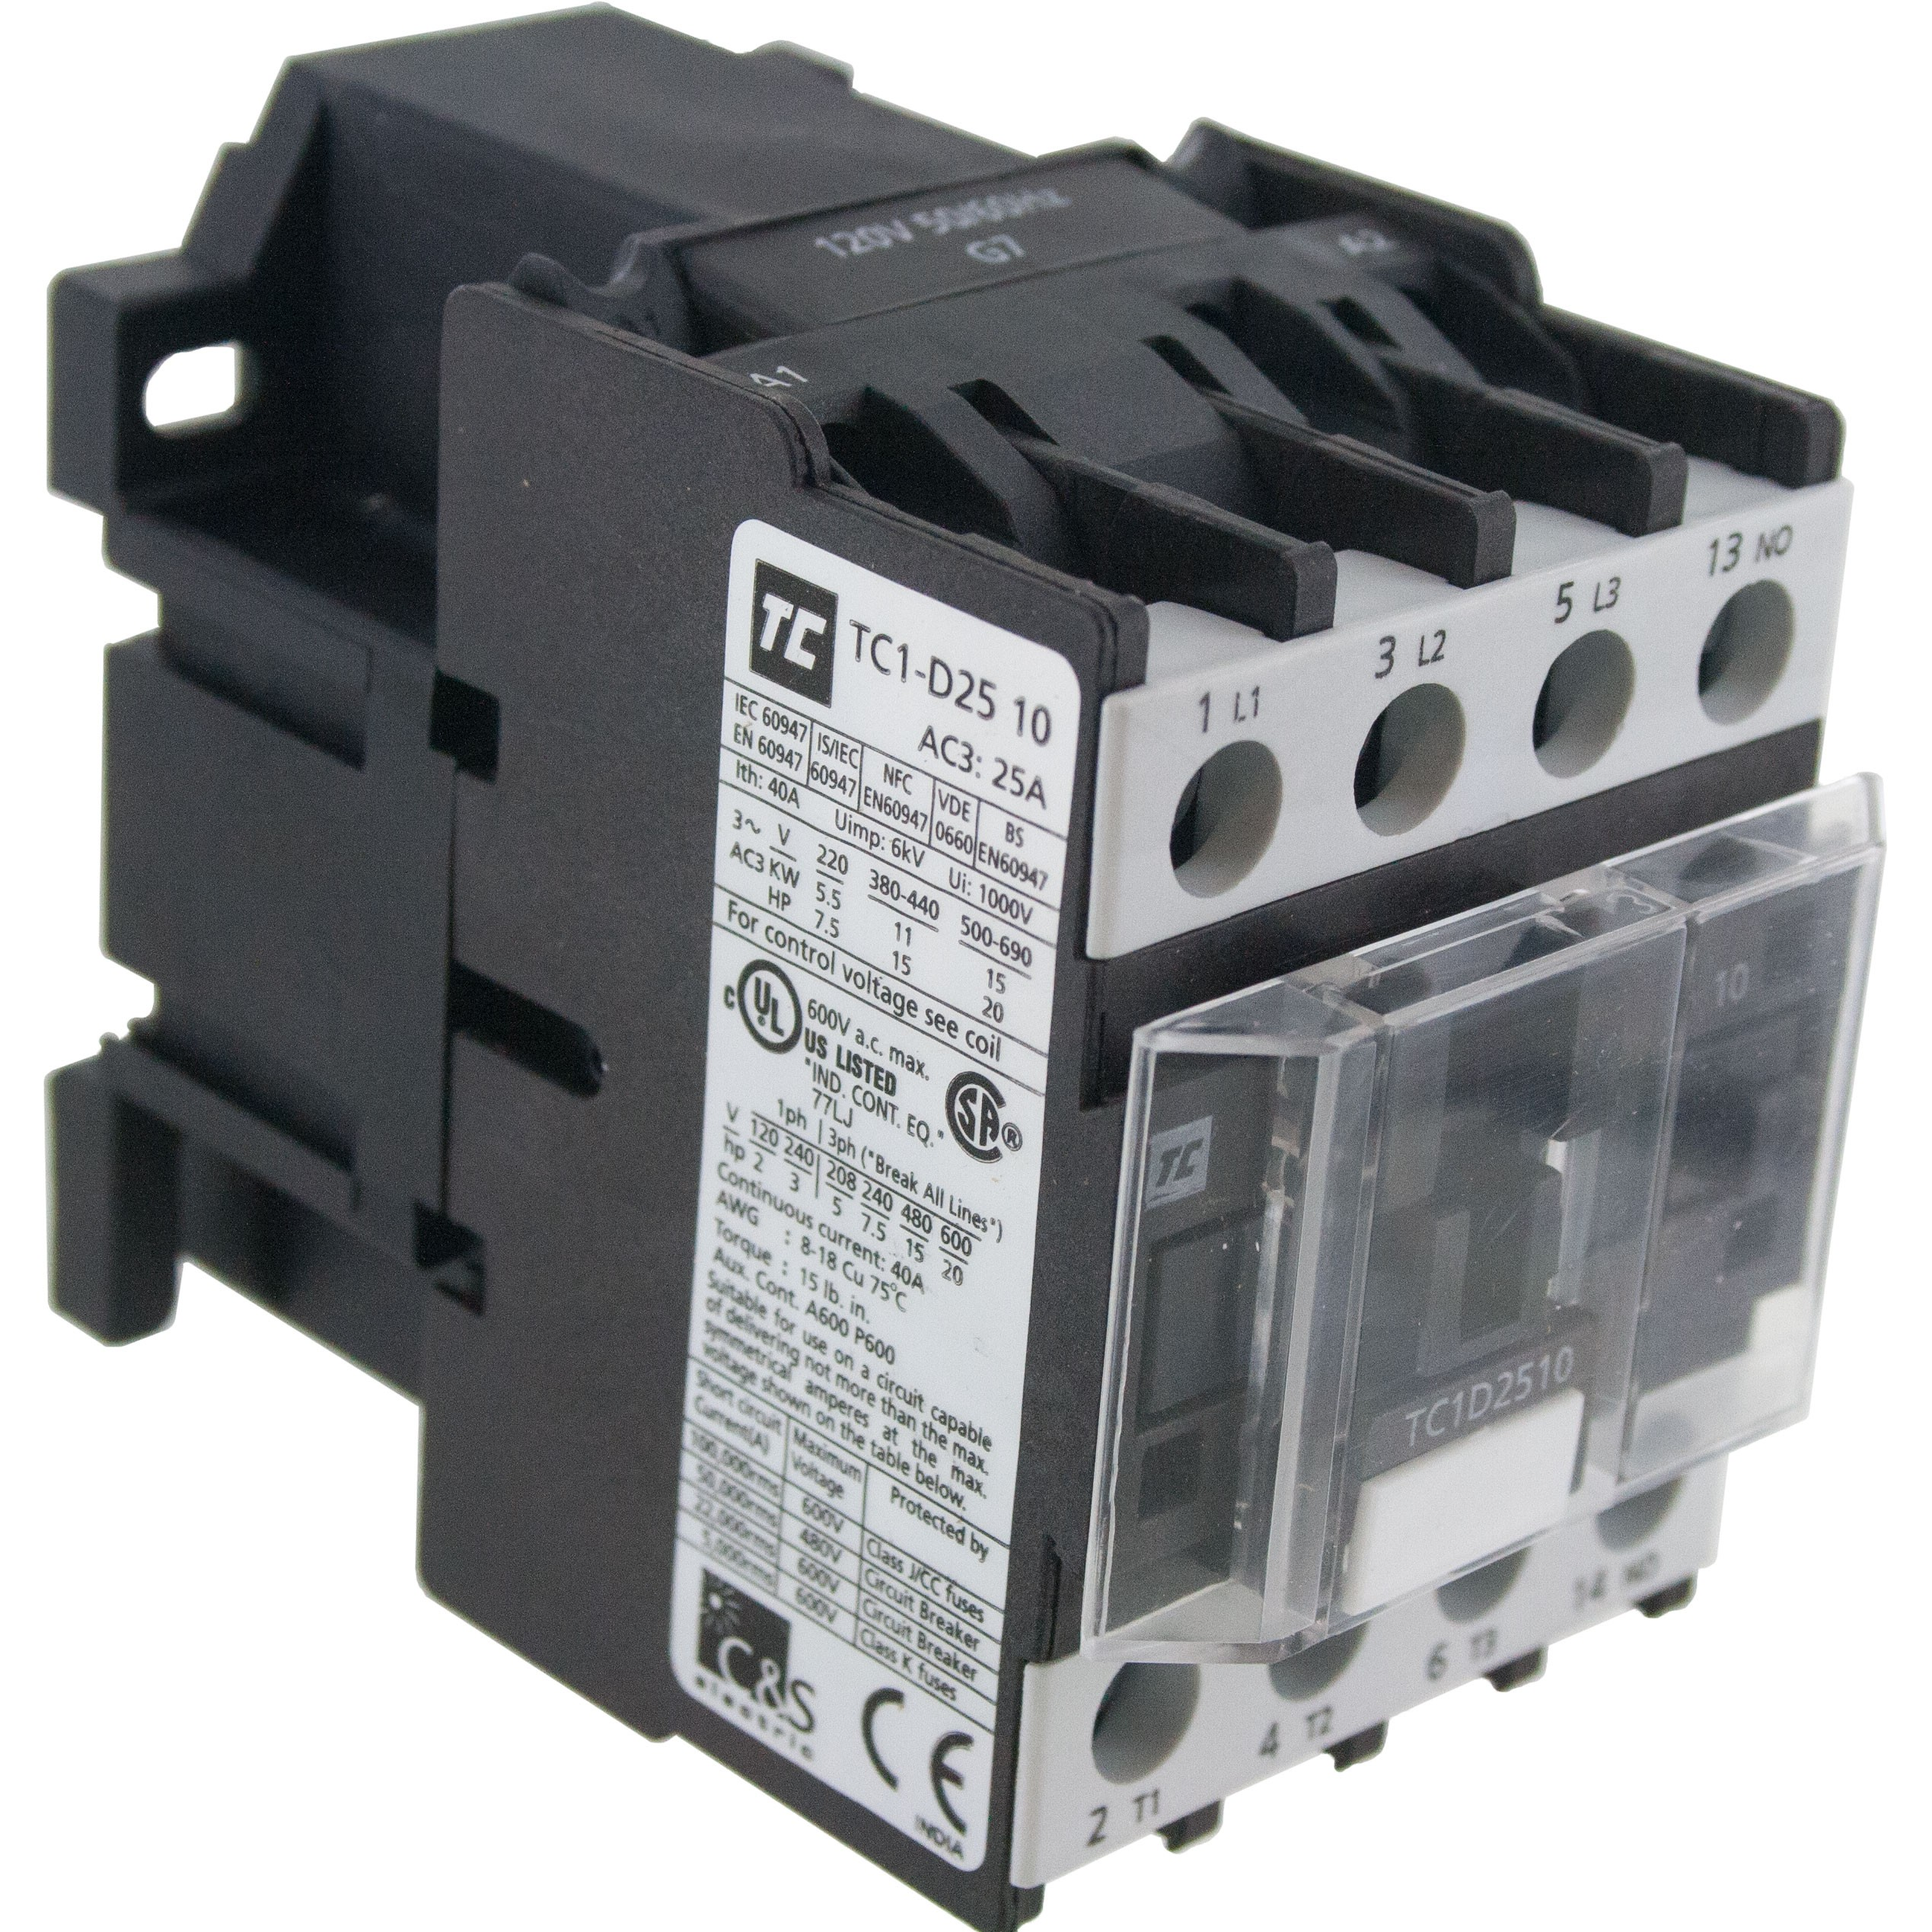 3 Pole Contactor 25 Amp 1 N/O 24 Volt AC Coil Angle